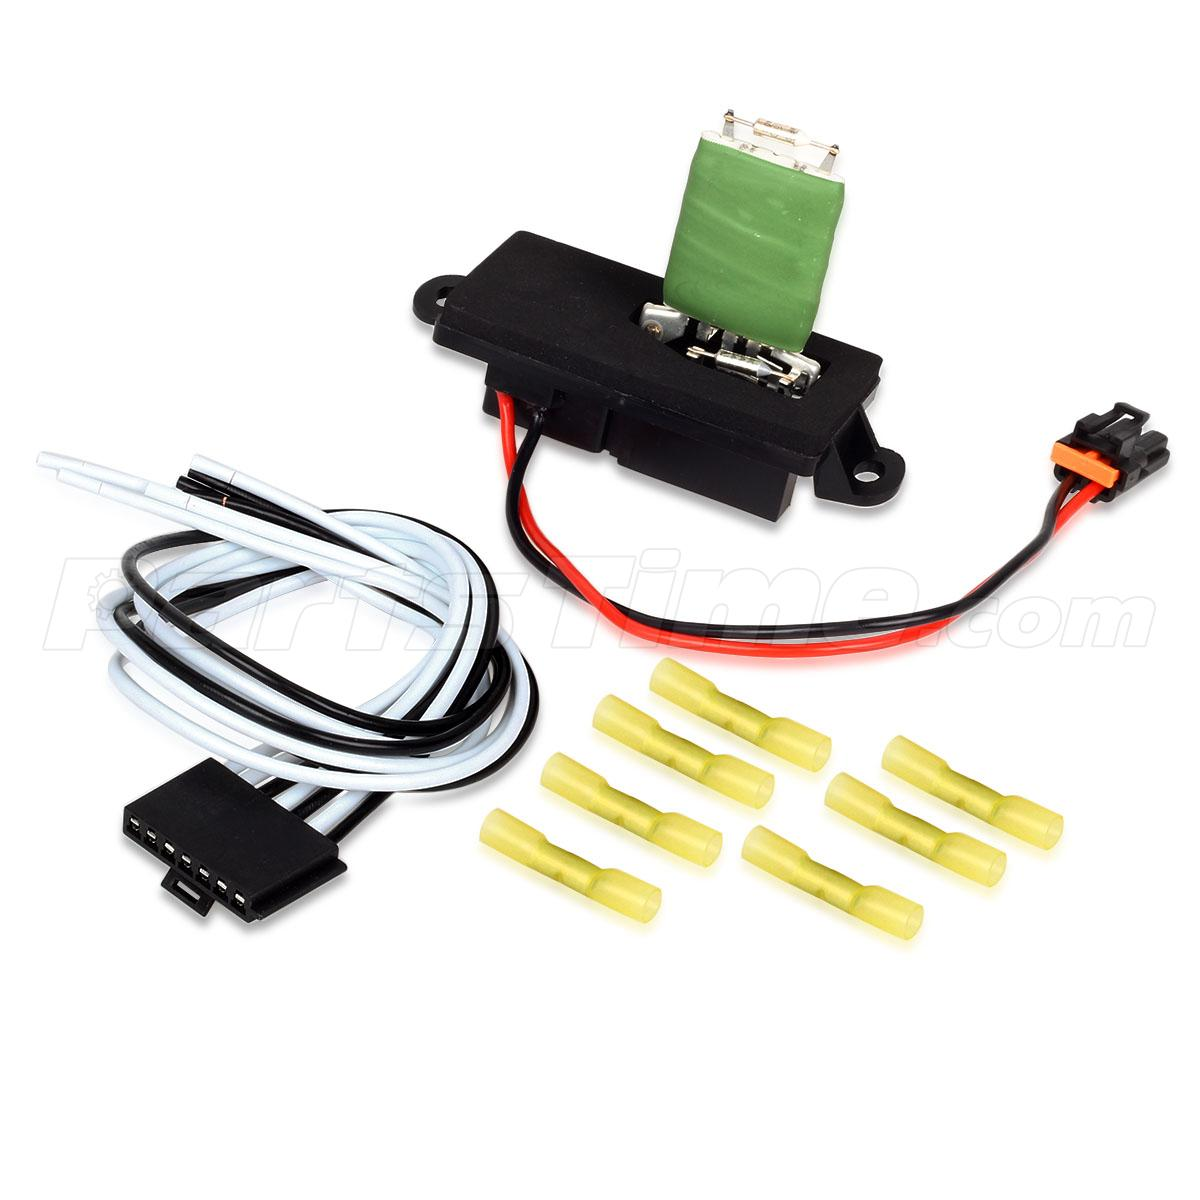 chevy s10 blower motor wiring diagram a/c blower motor resistor w/ wire harness for chevrolet ... #9